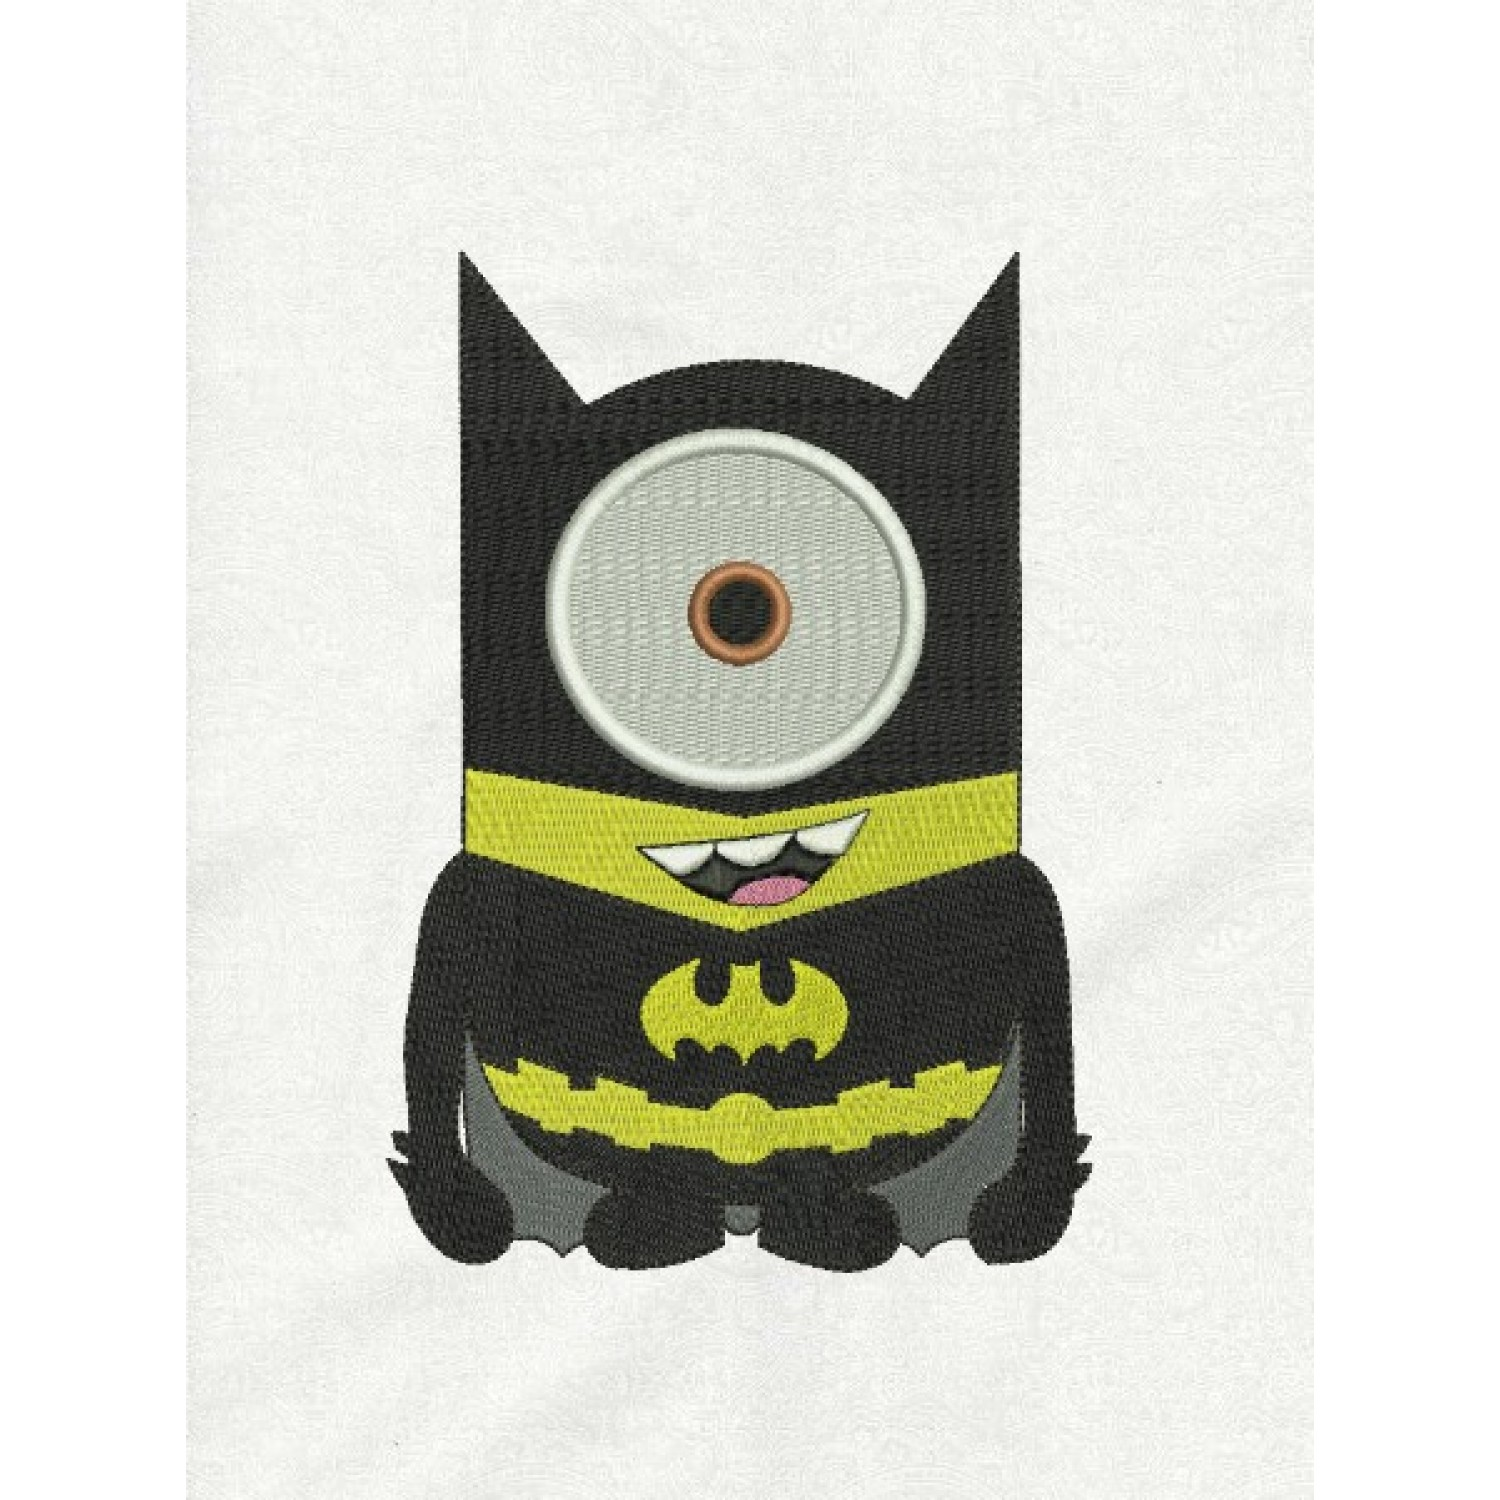 Minion batman embroidery